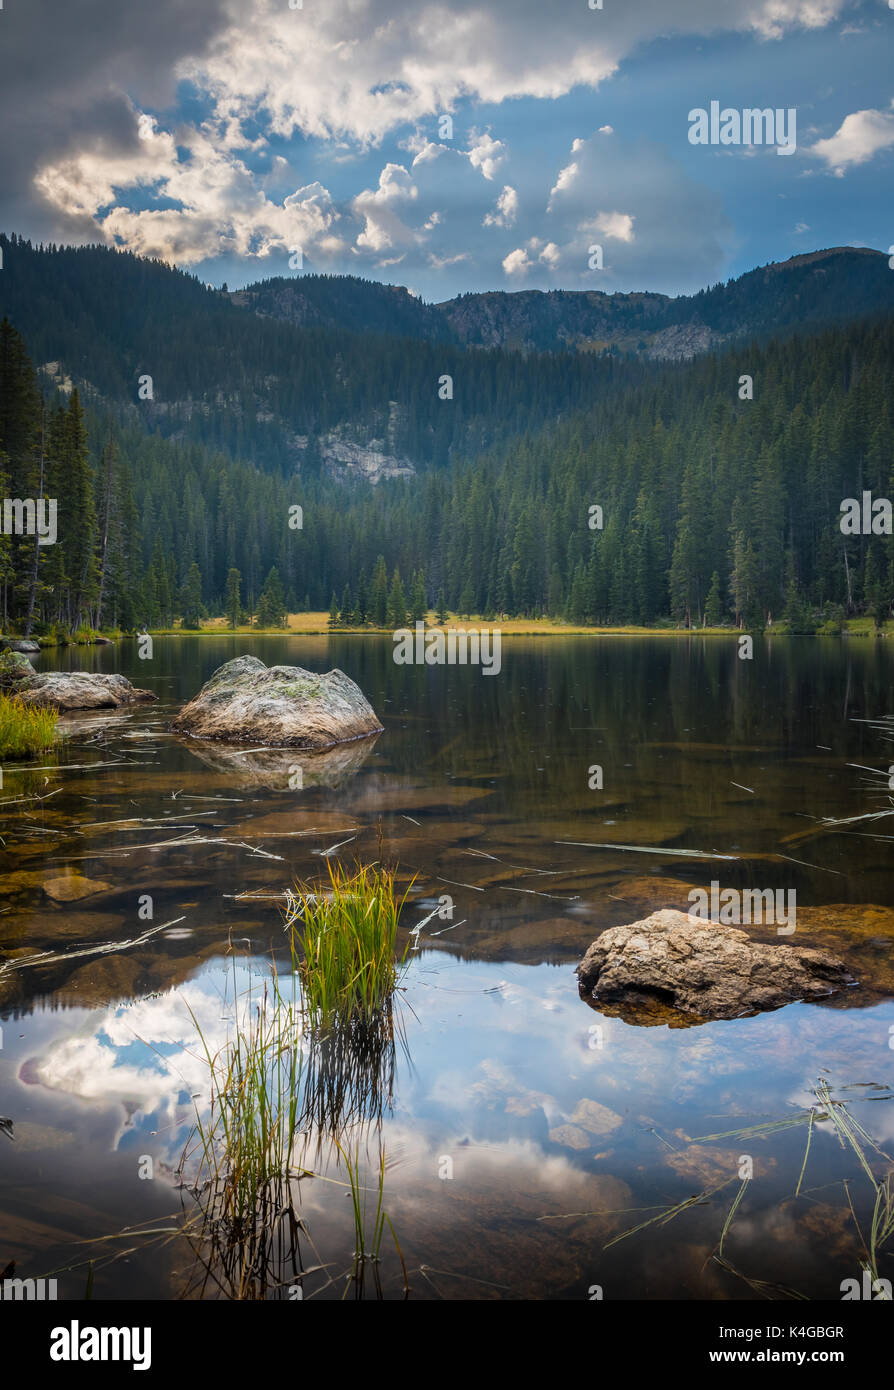 ThePecos Wildernessis a protectedwilderness areawithin theSanta Fe National ForestandCarson National Forest. Stock Photo